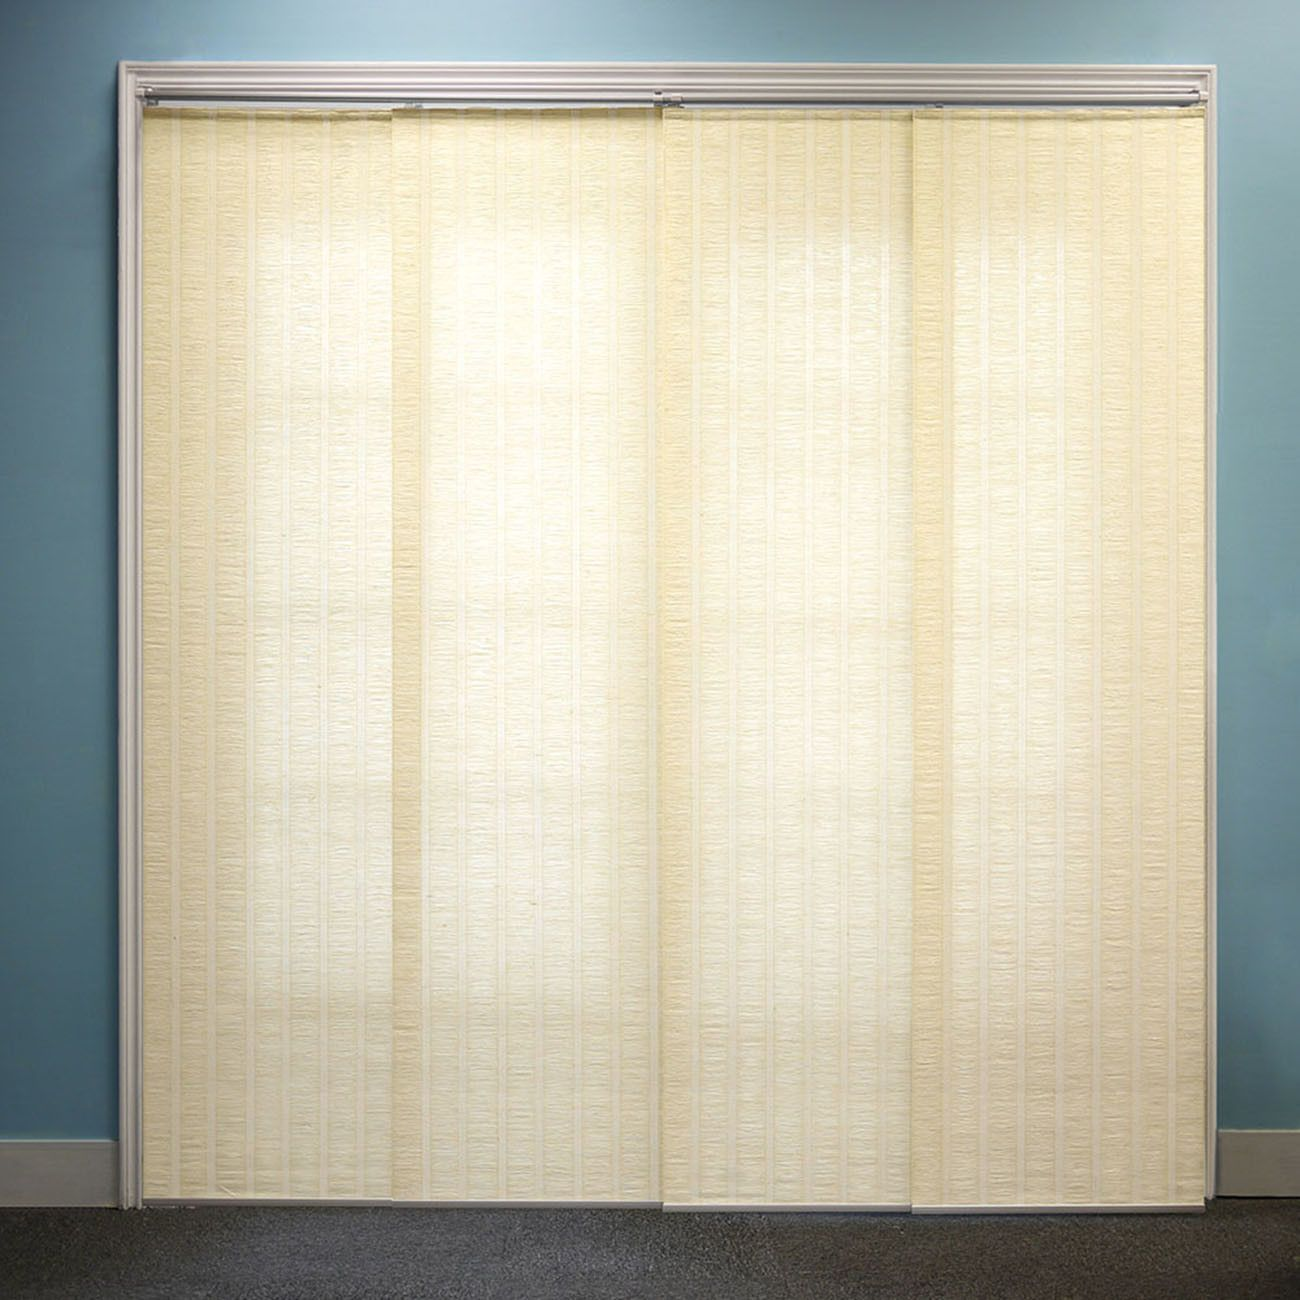 Features modern upgrade to vertical blinds to add beauty and